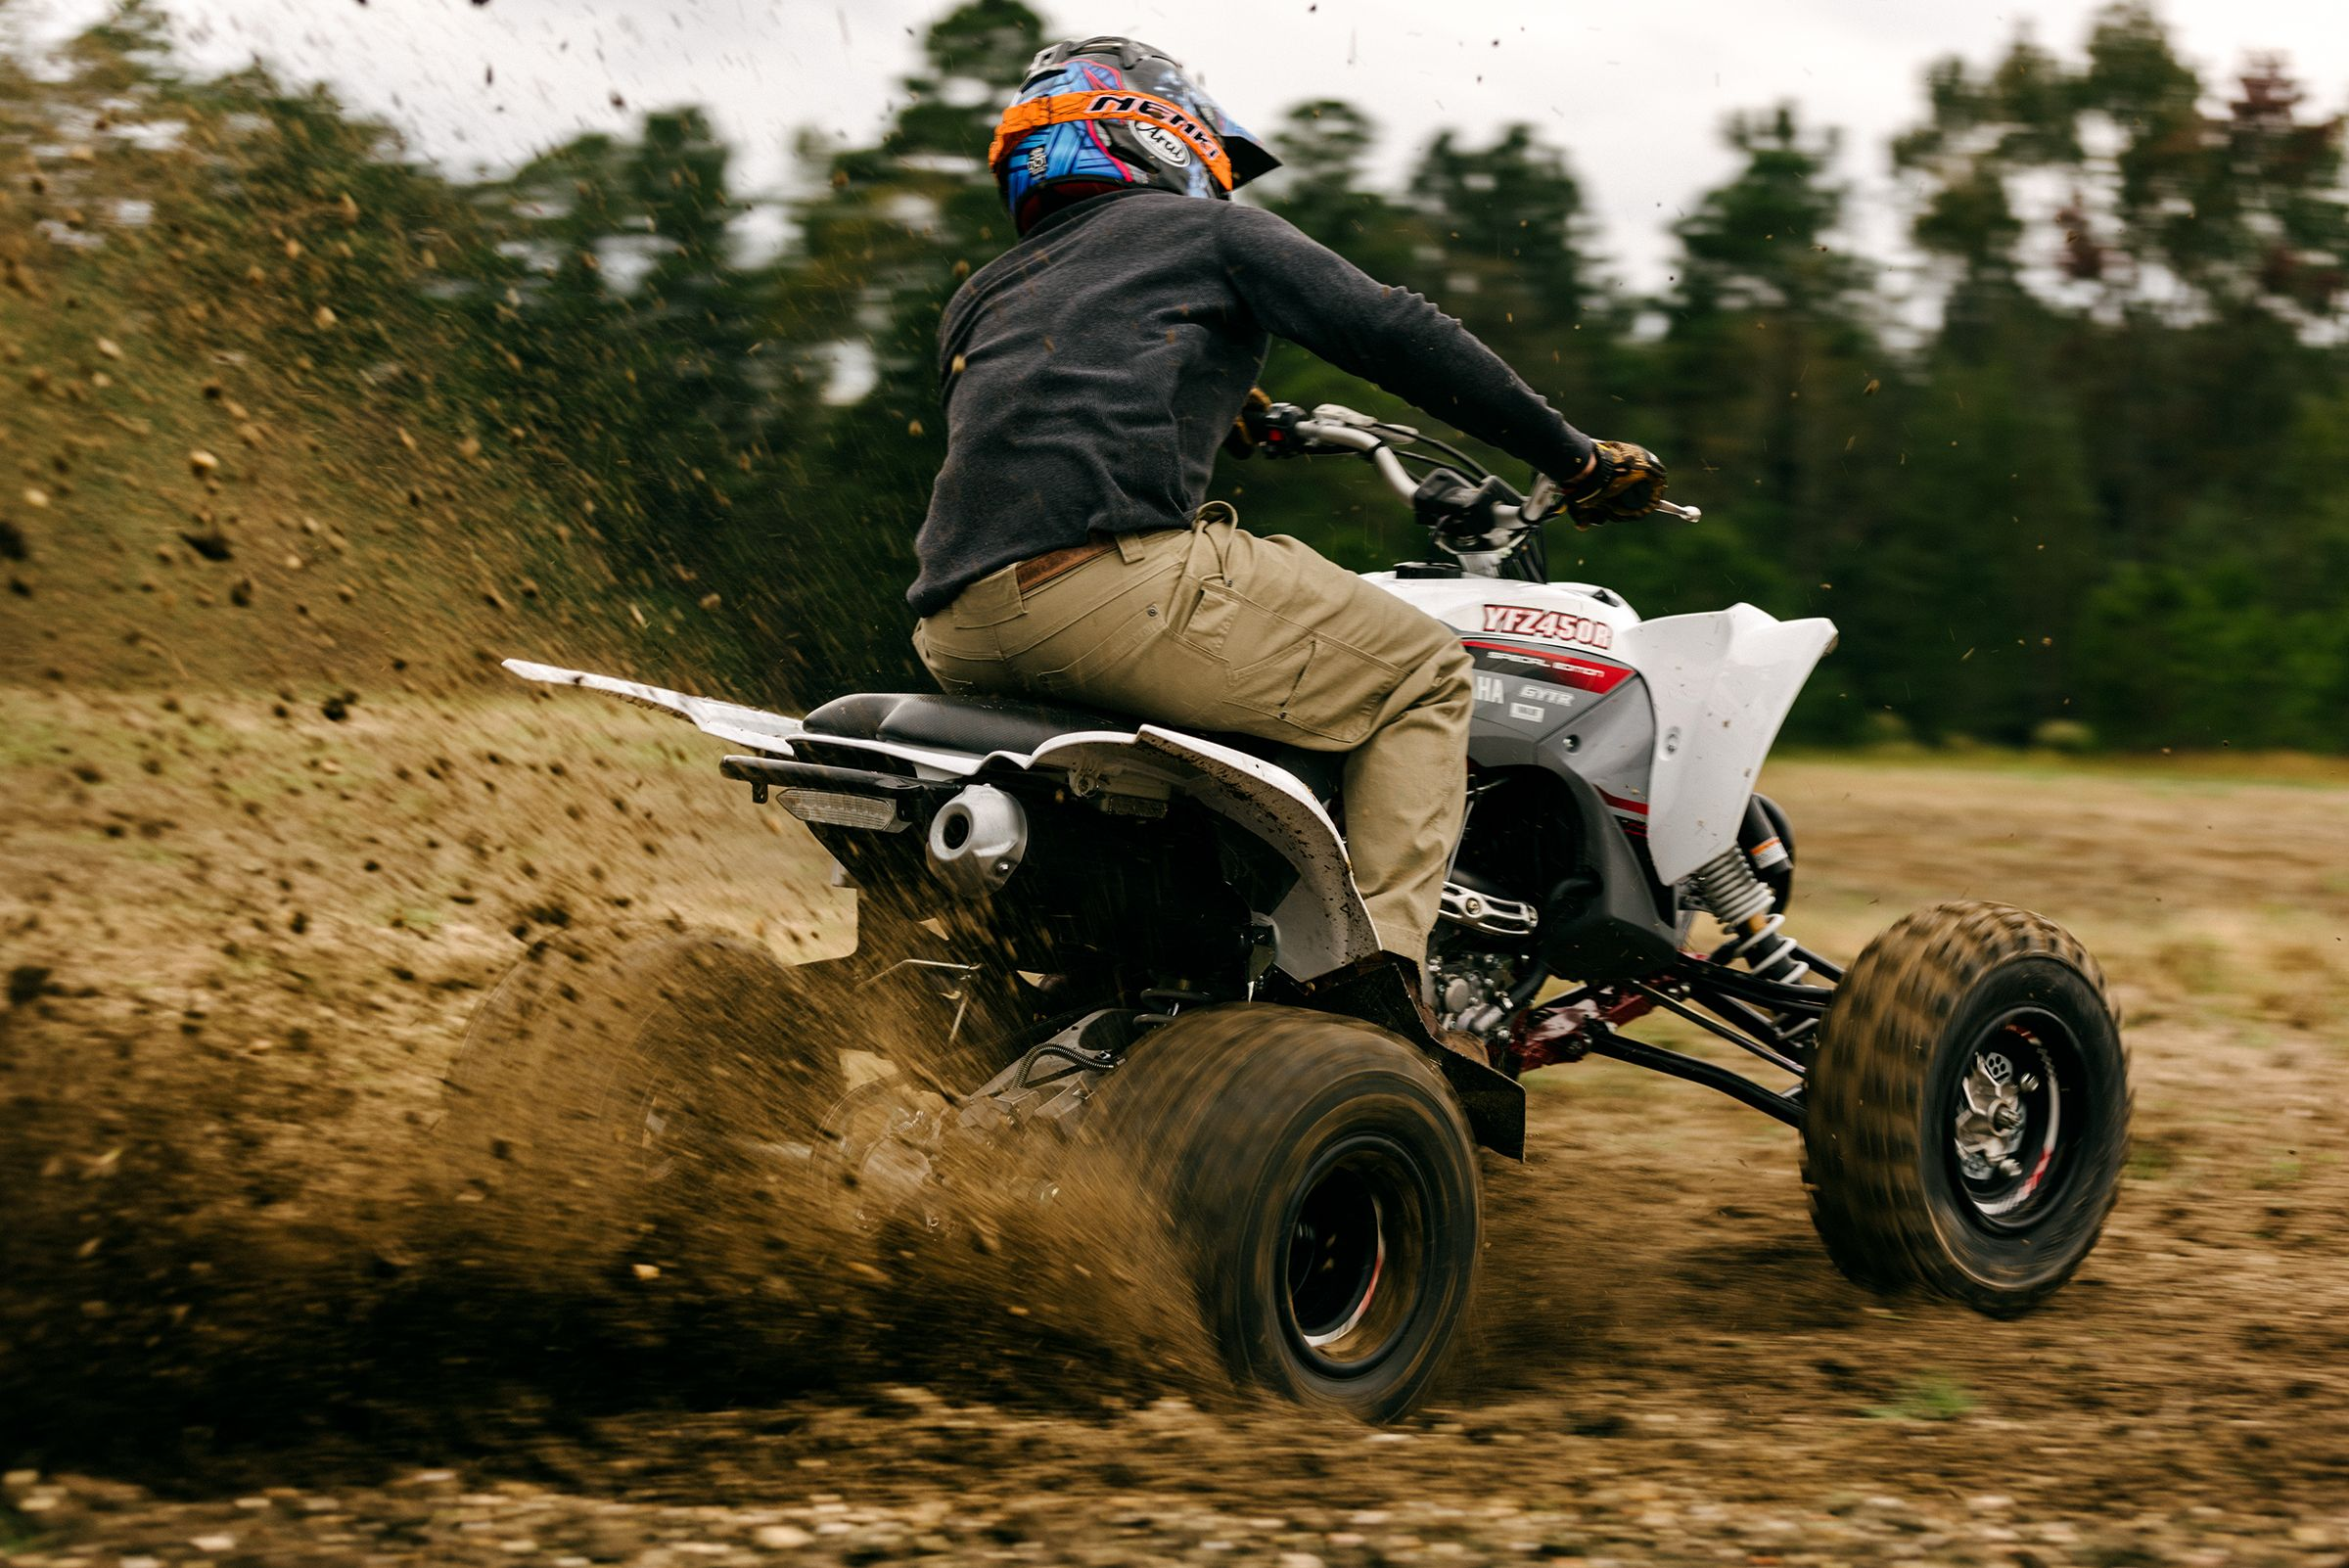 Yamaha 450R SE ATV Review: The Last Real Sport Quad